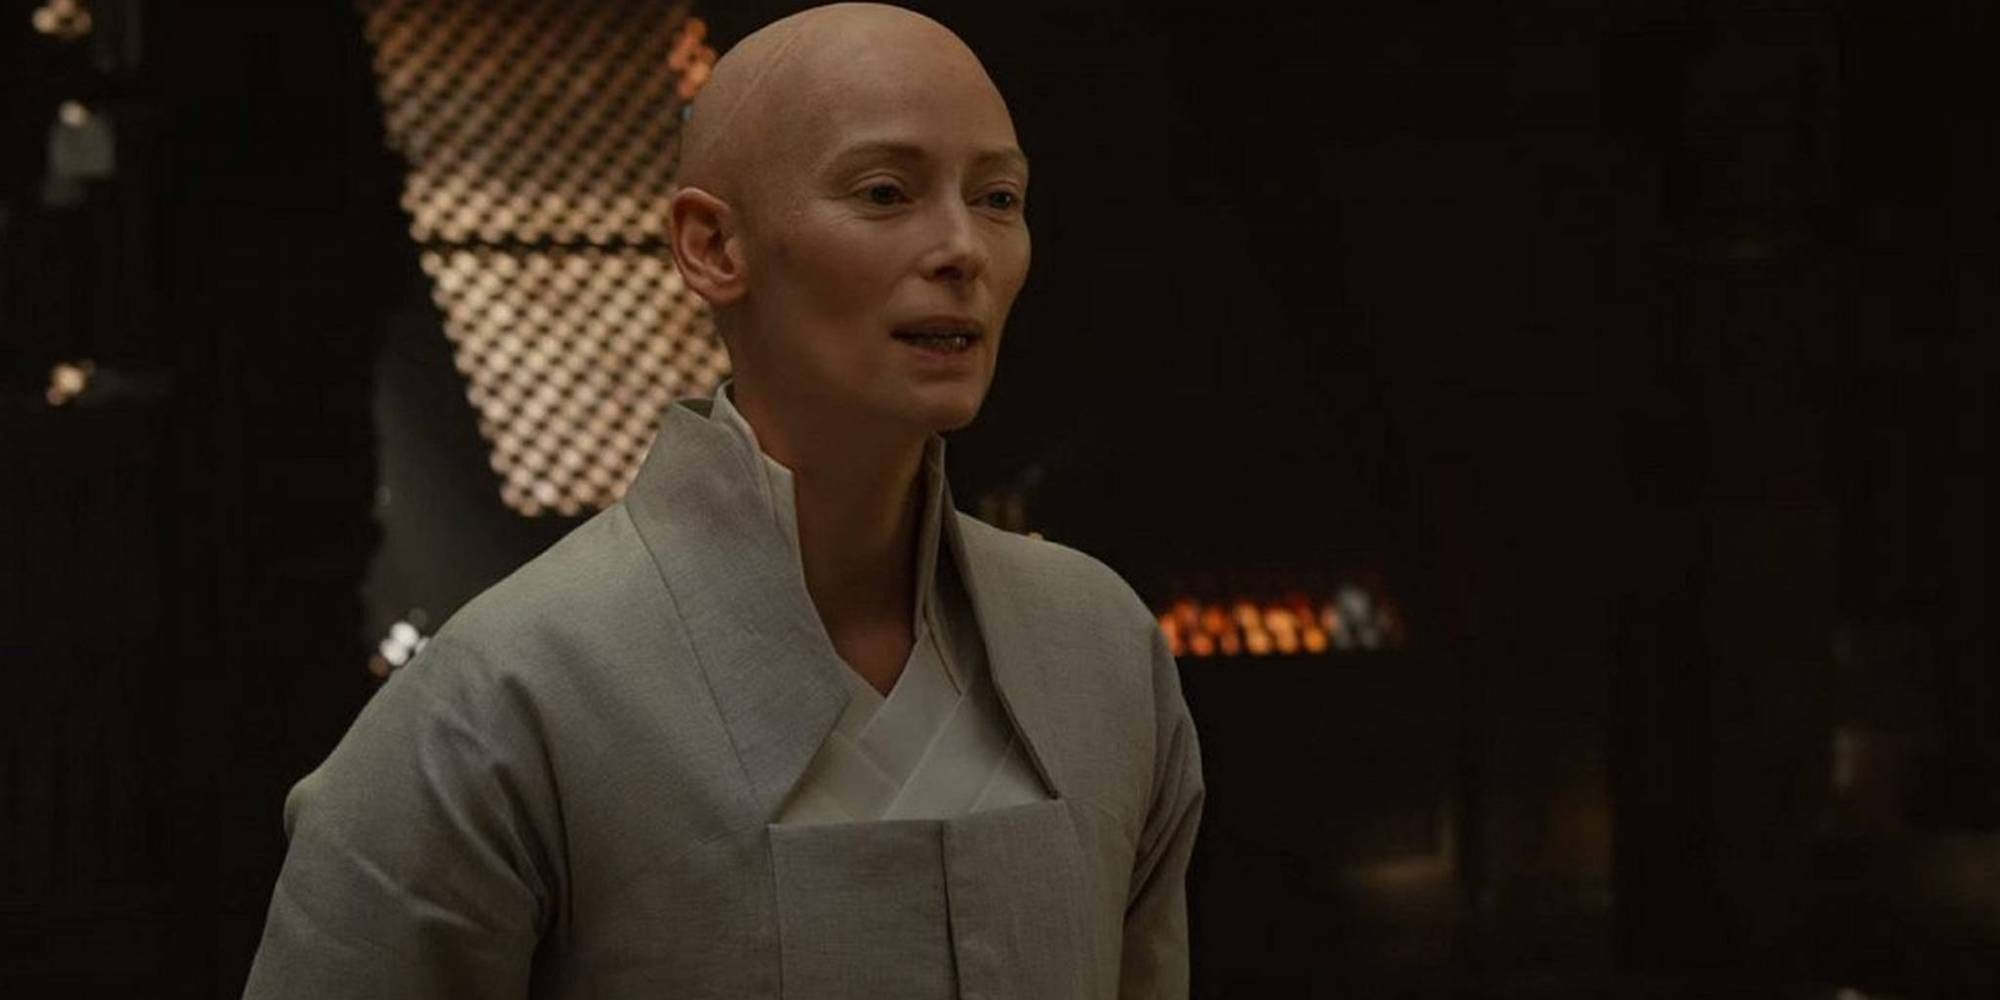 Avengers 4: Tilda Swinton Returning As Ancient One, Confirms Producer